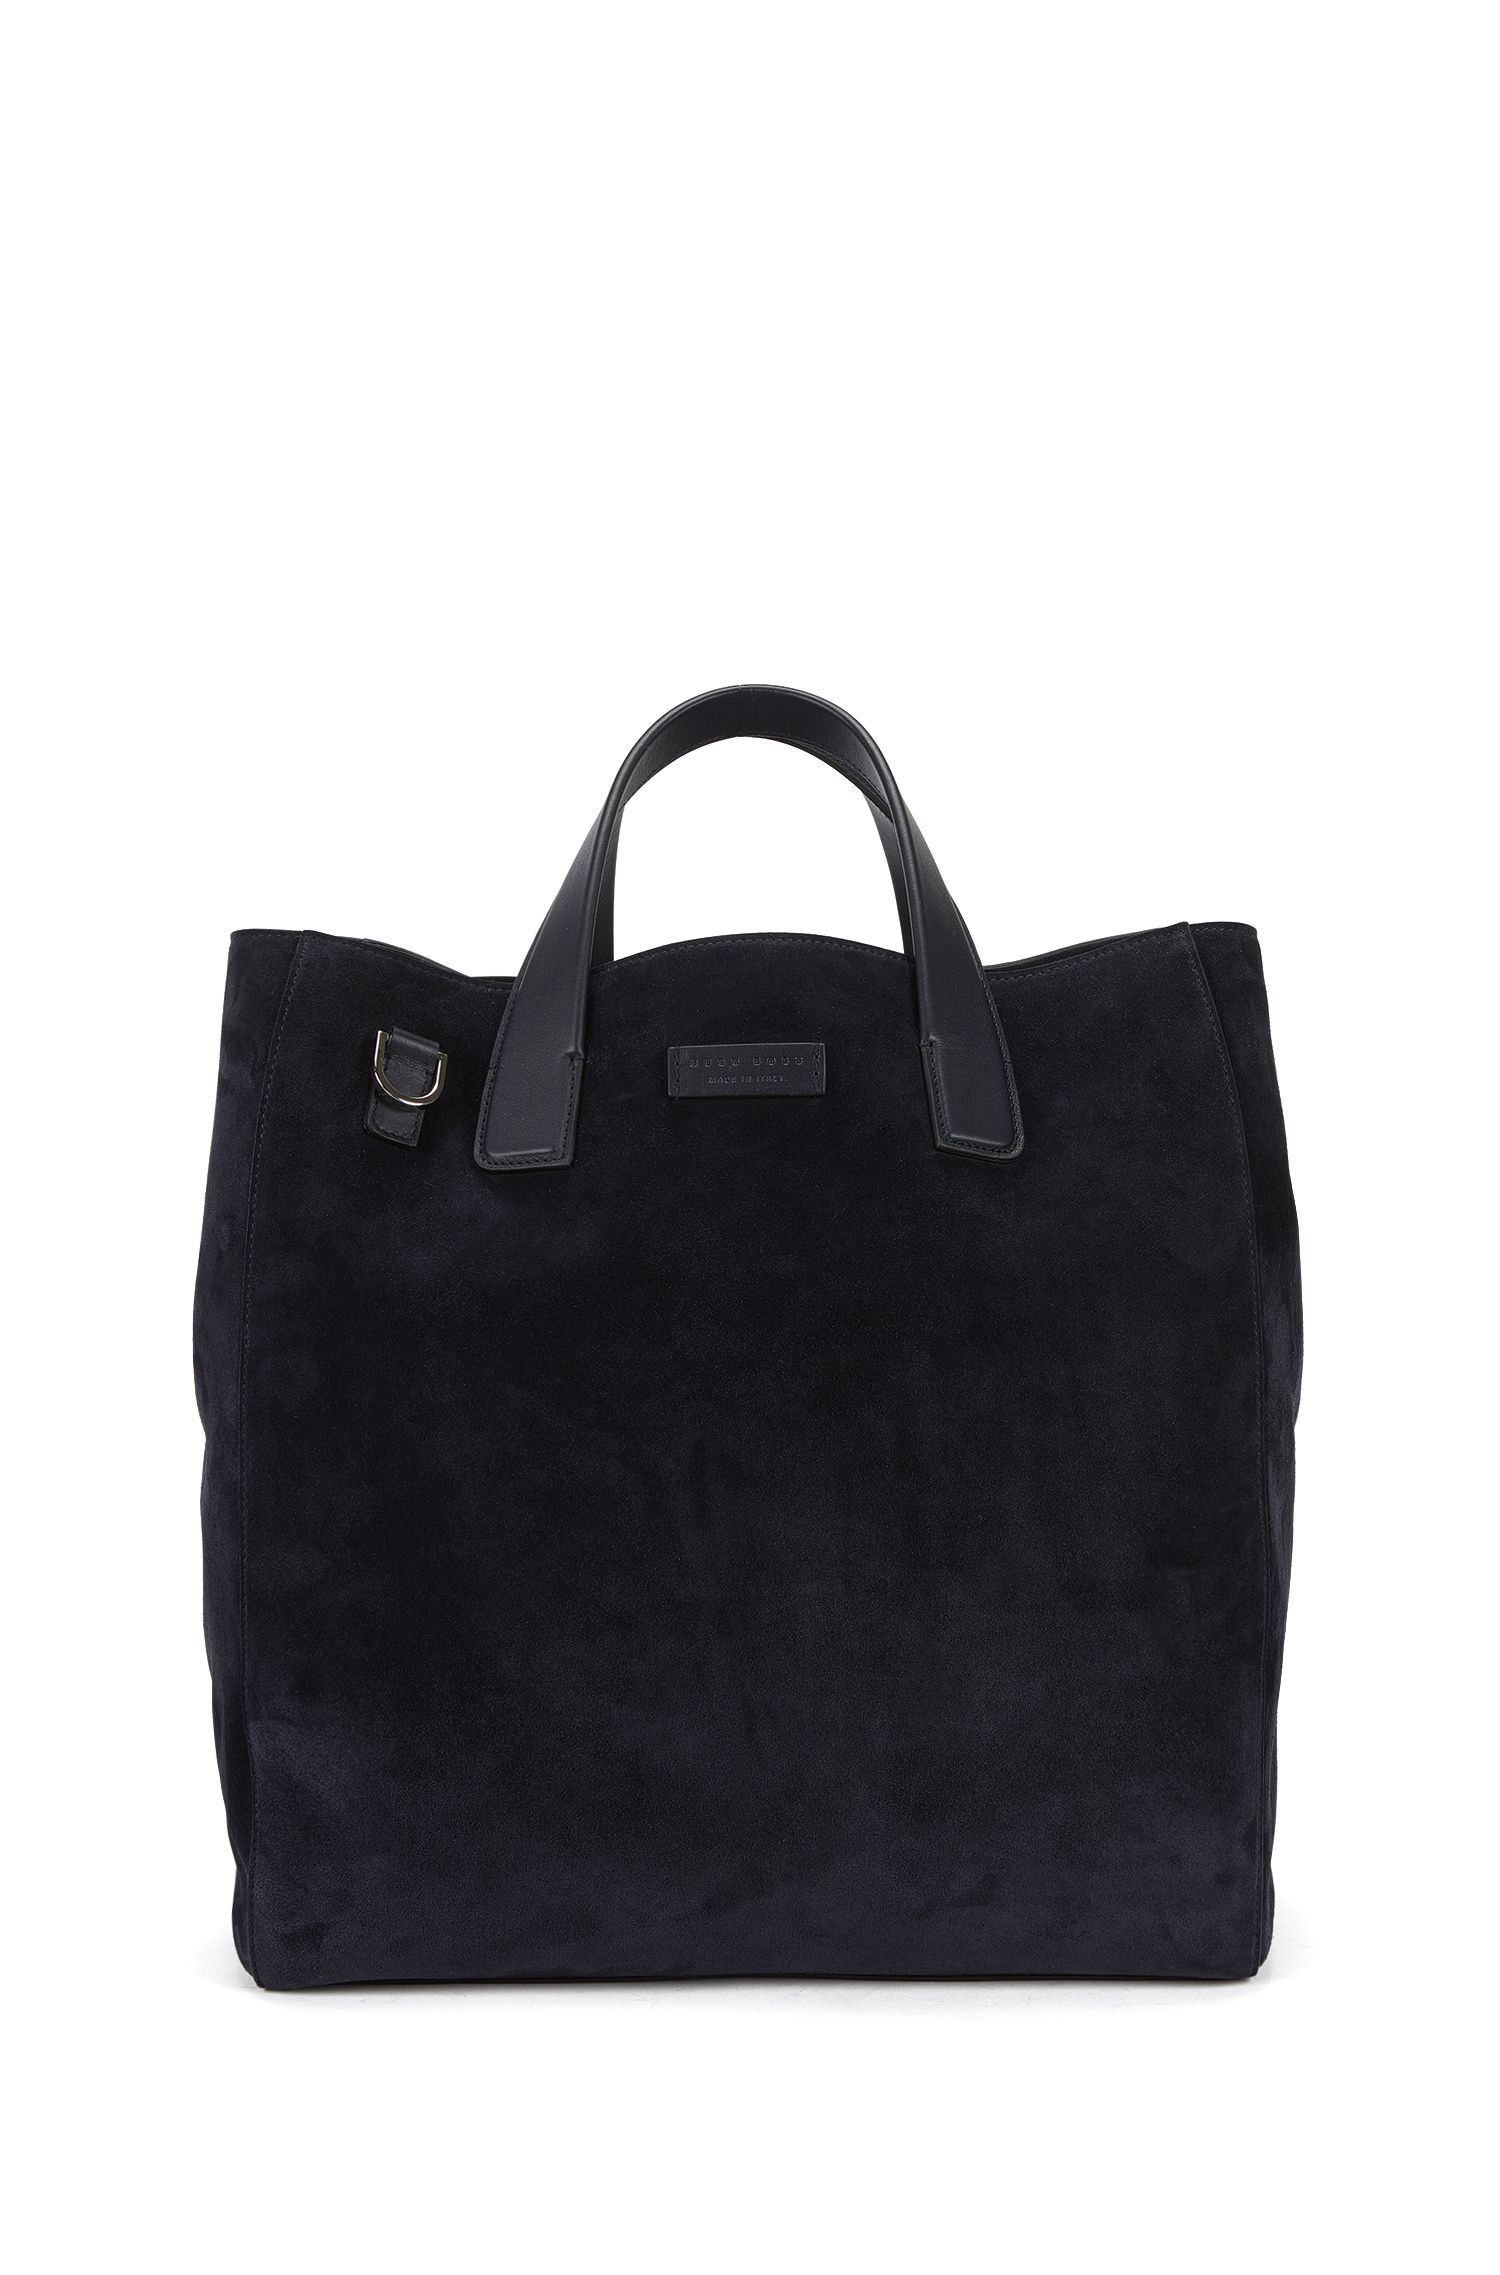 Suede tote bag with detachable shoulder strap